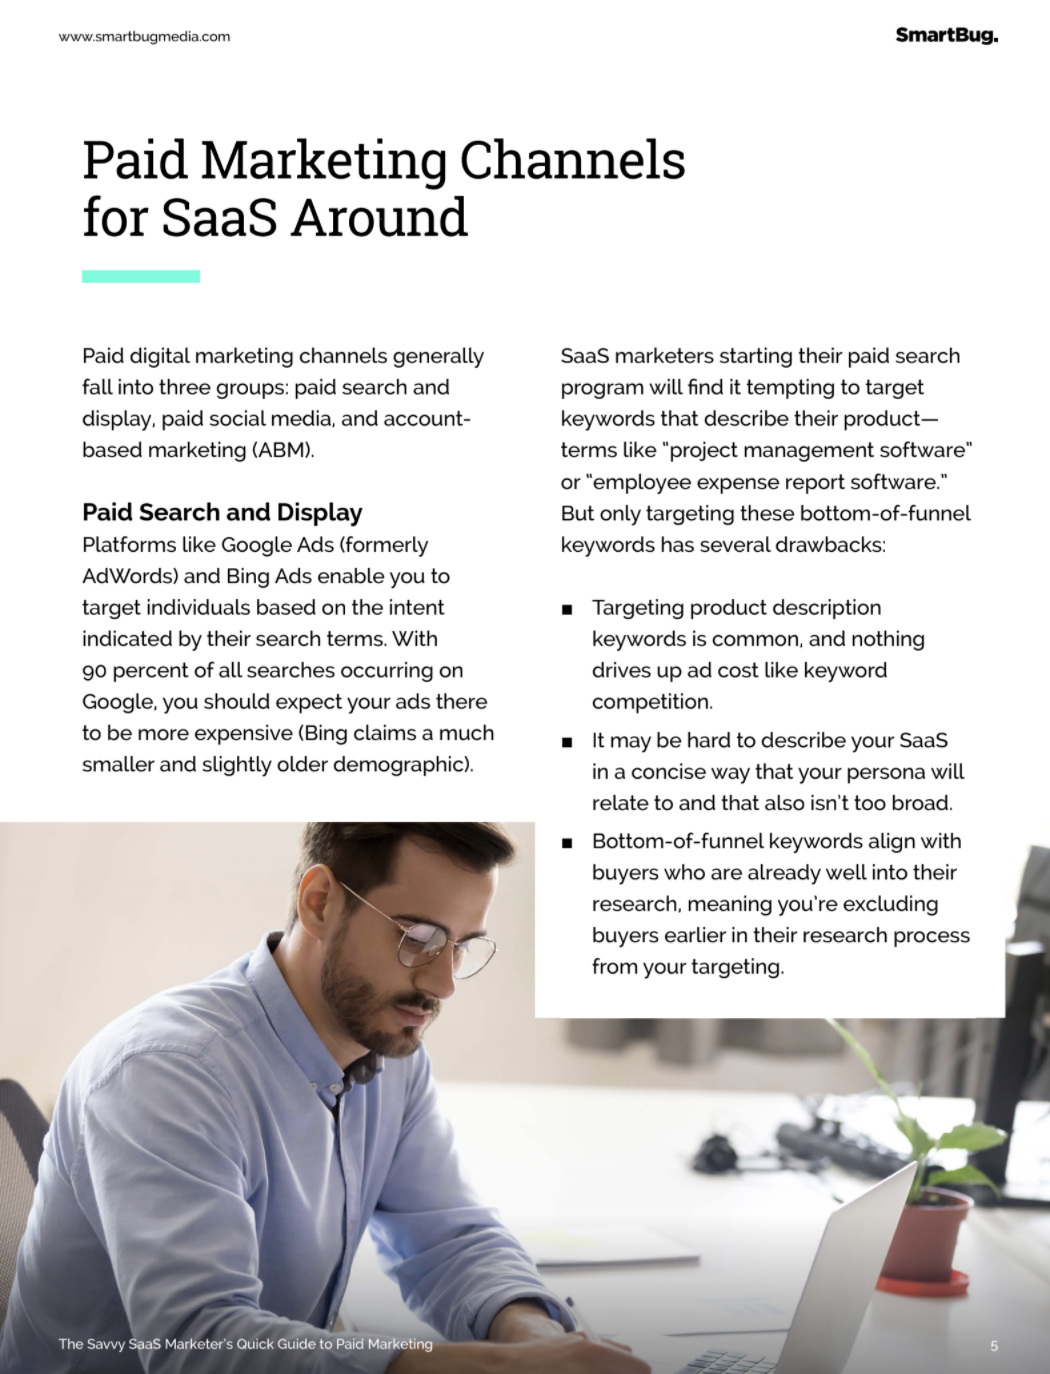 Paid media channels for SaaS